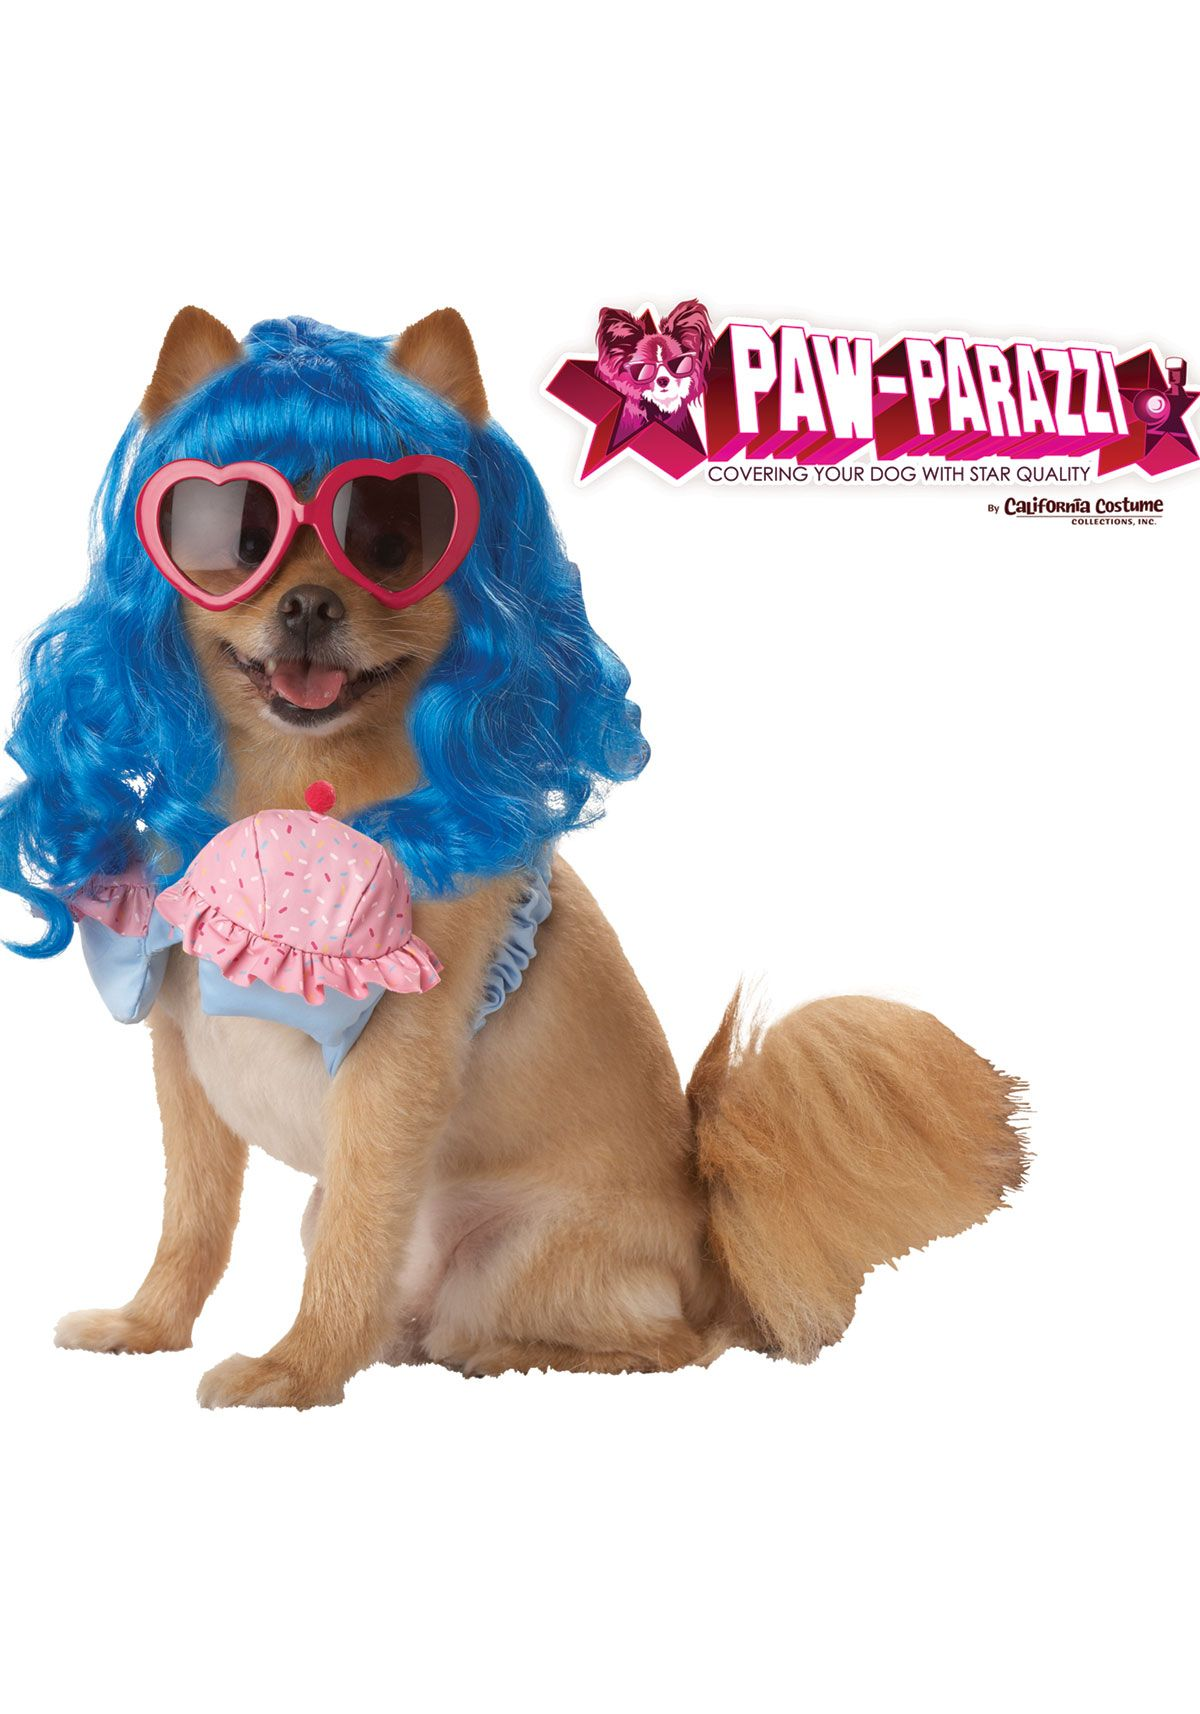 Price reduced up to 40% save Now Cupcake Girl Dog Costume (Large,Blue/Pink) Check more at http://morehalloween.com/cupcake-girl-dog-costume-largebluepink/